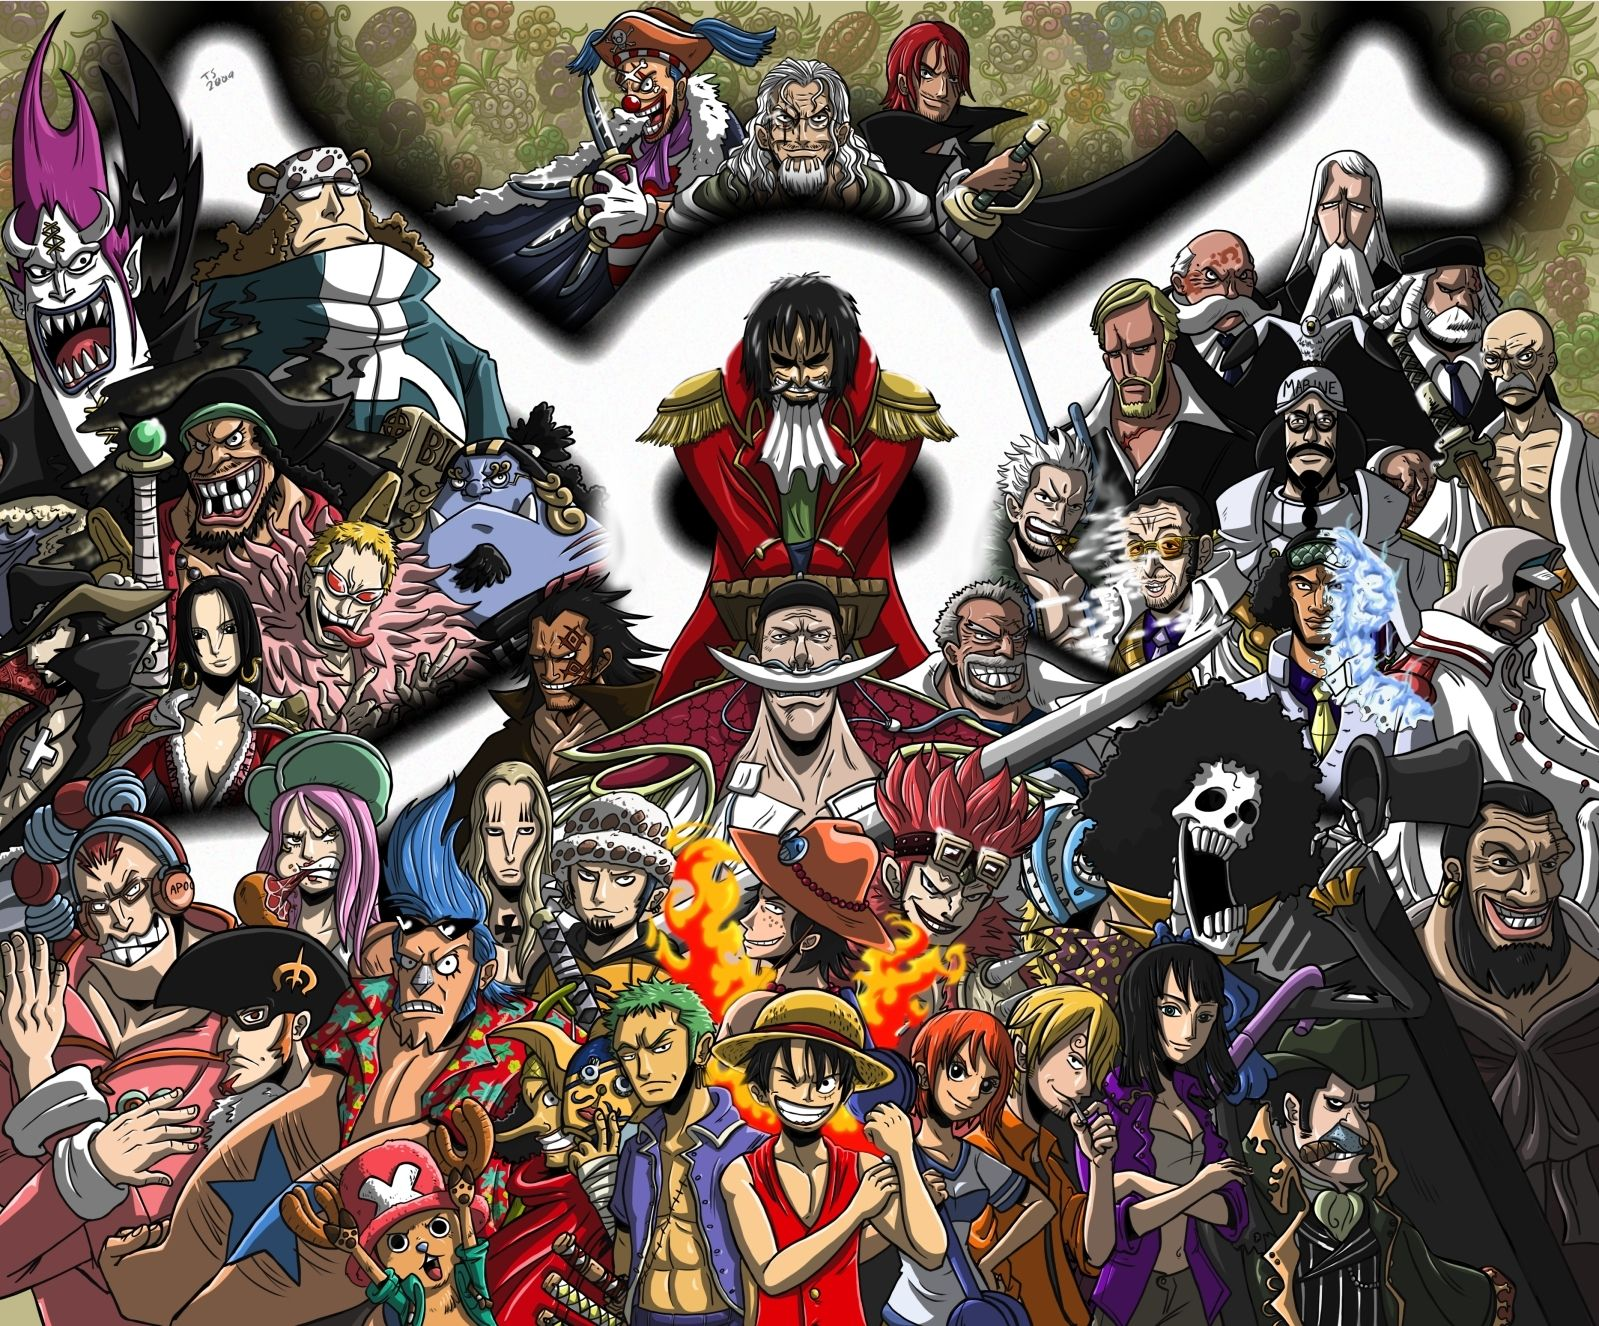 One Piece Photo One Piece All Characters One Piece Photos One Piece All Characters One Piece Anime